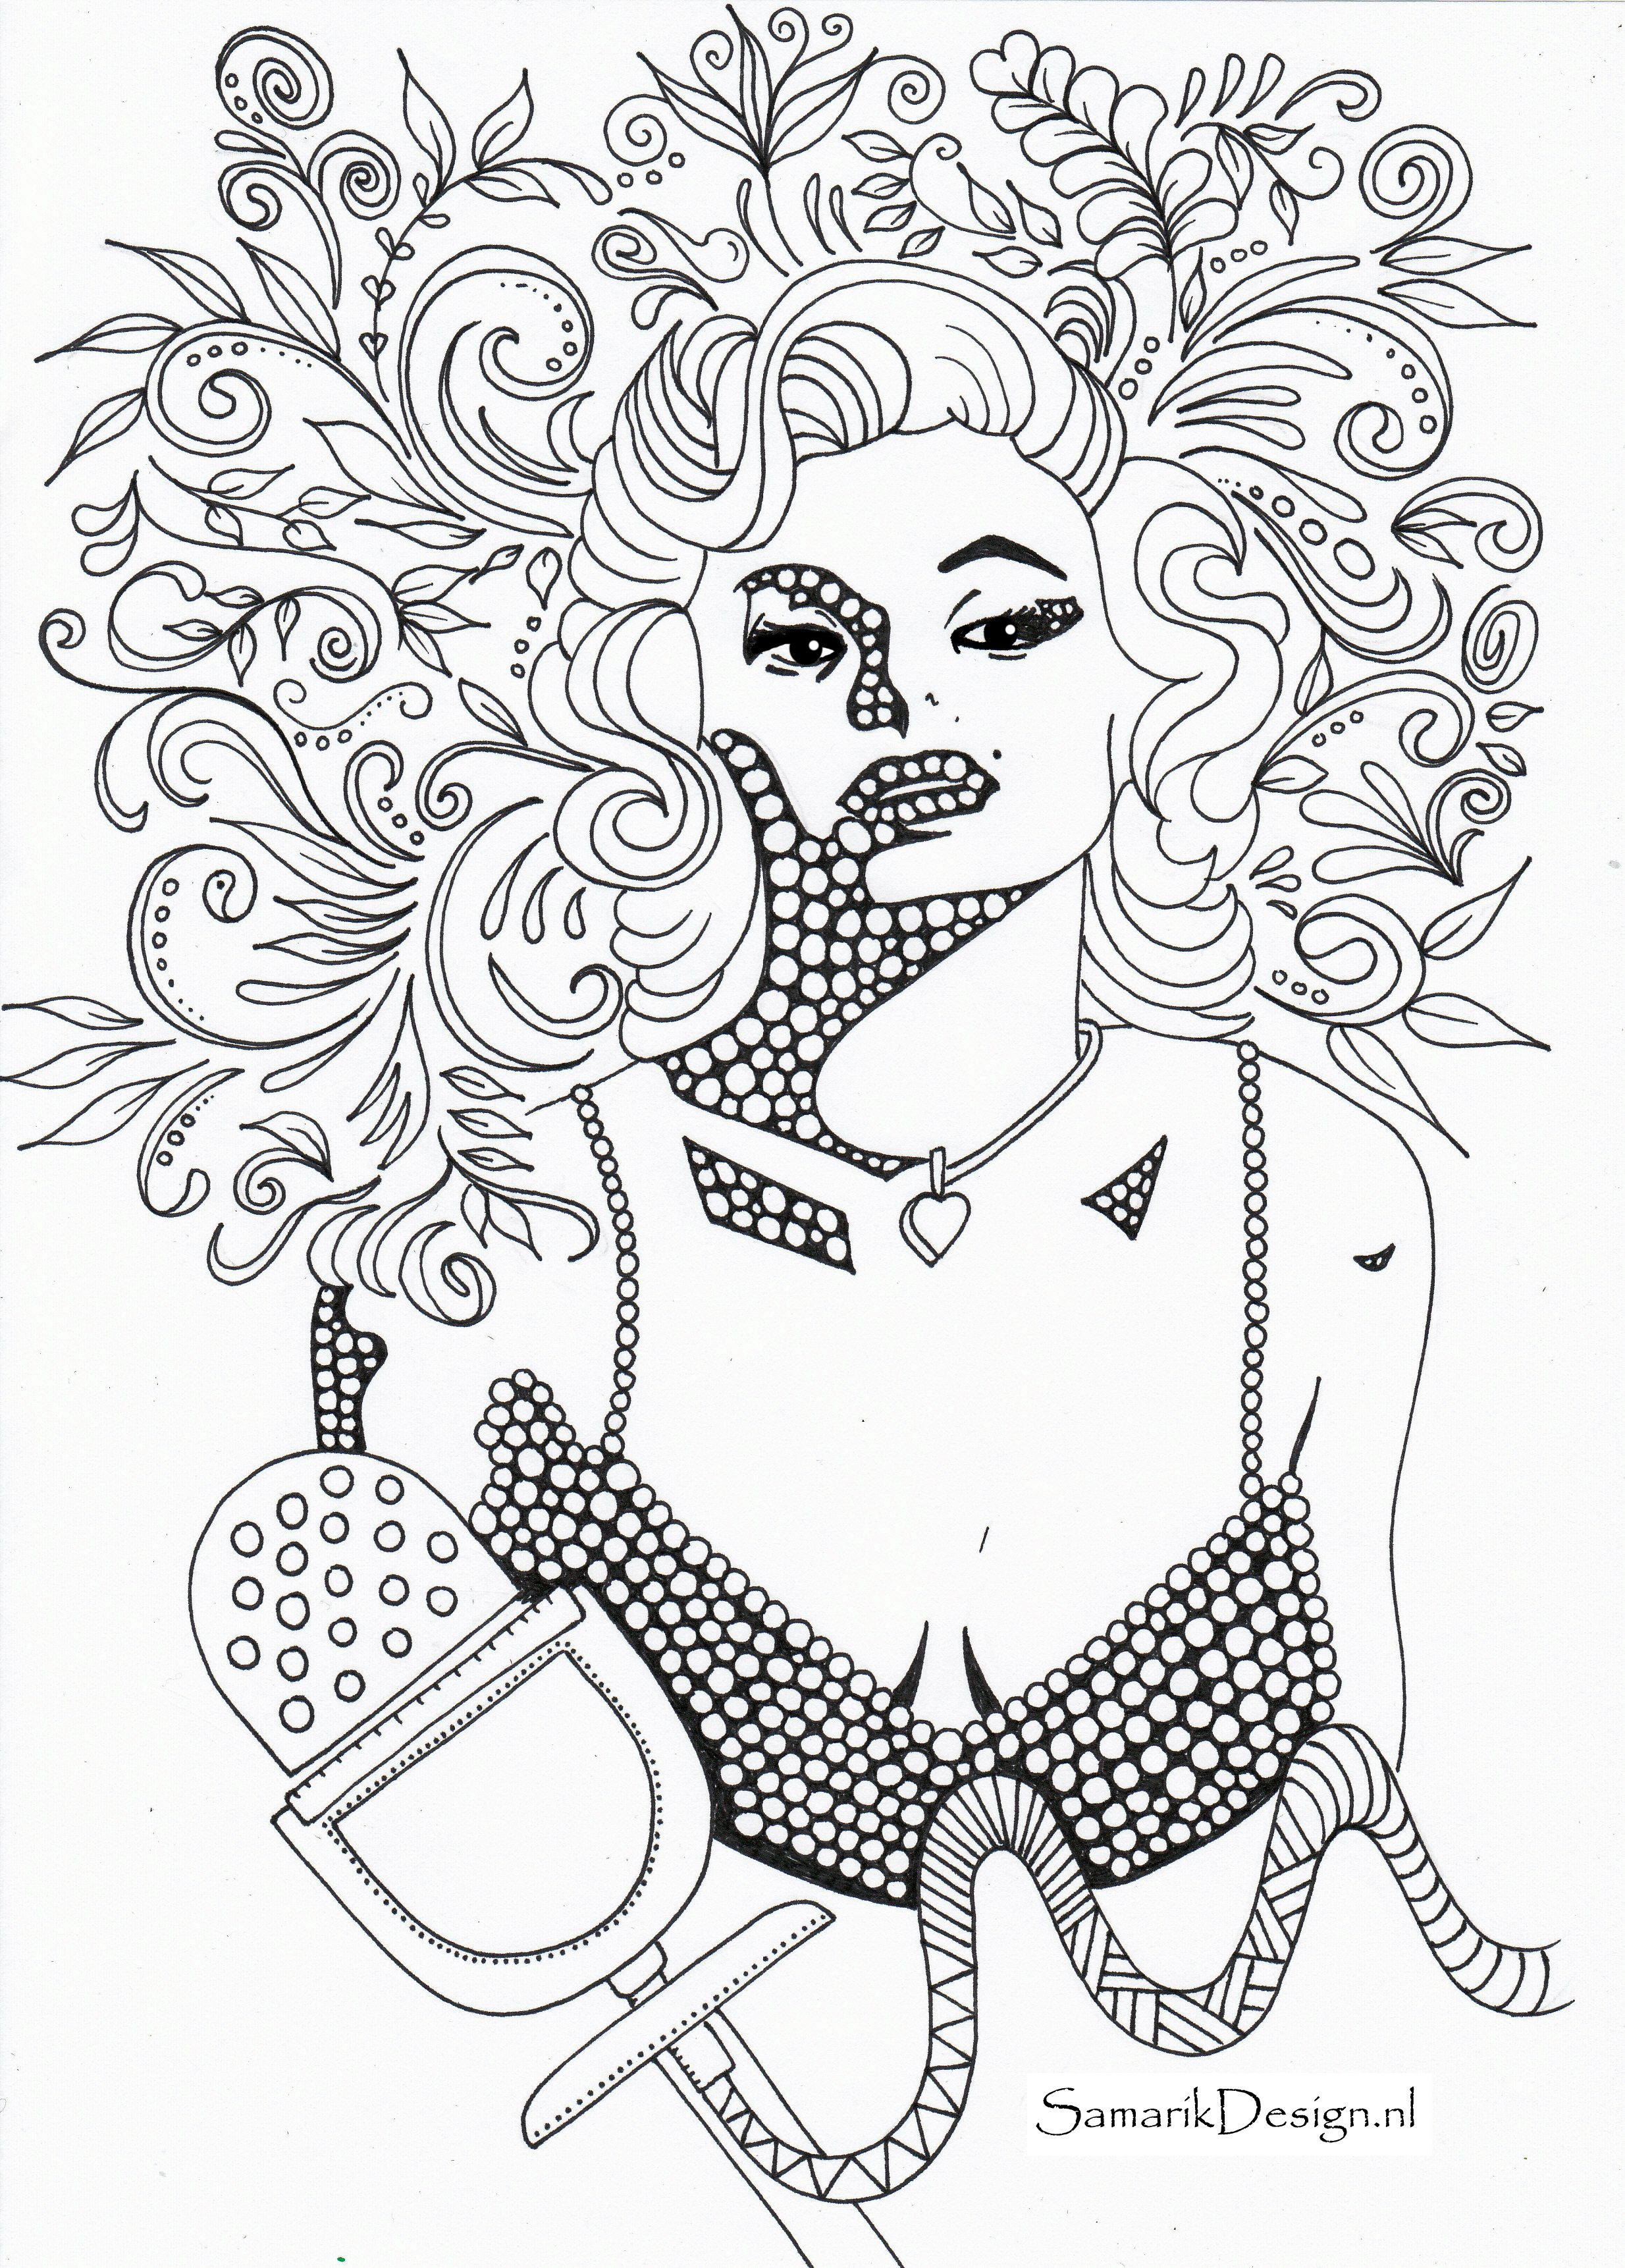 Marilyn Monroe Famous People Coloring Pages Valentine Coloring Pages Super Mario Coloring Pages